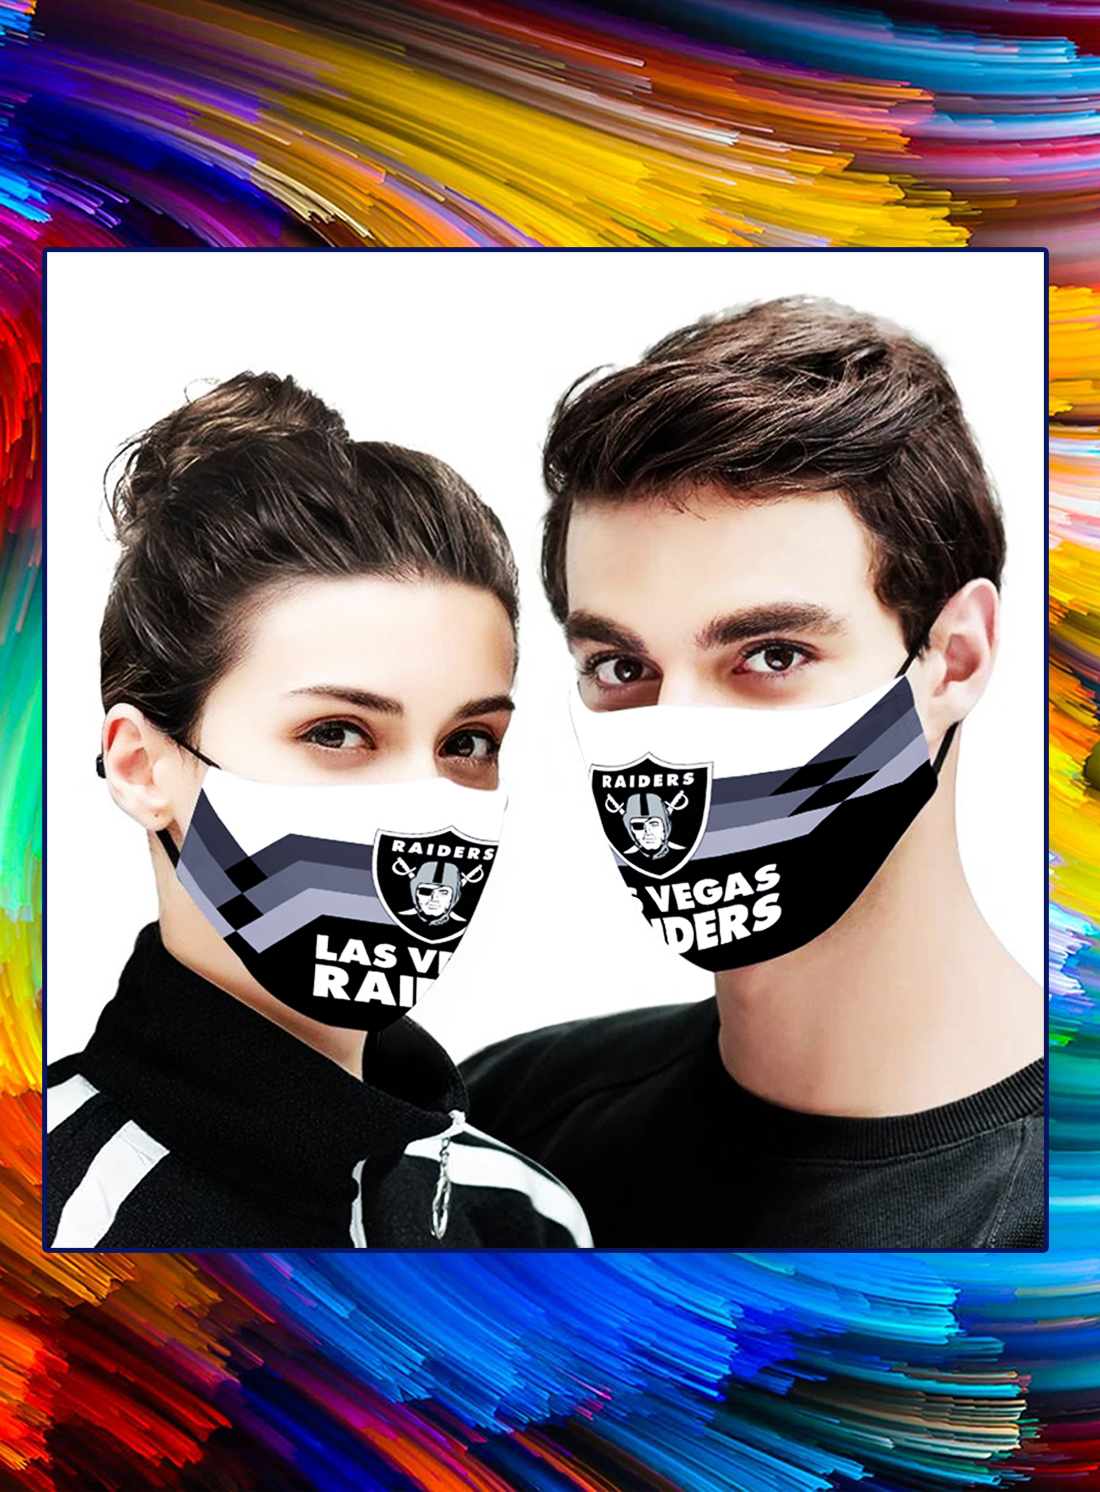 Oakland raiders face mask - Picture 1